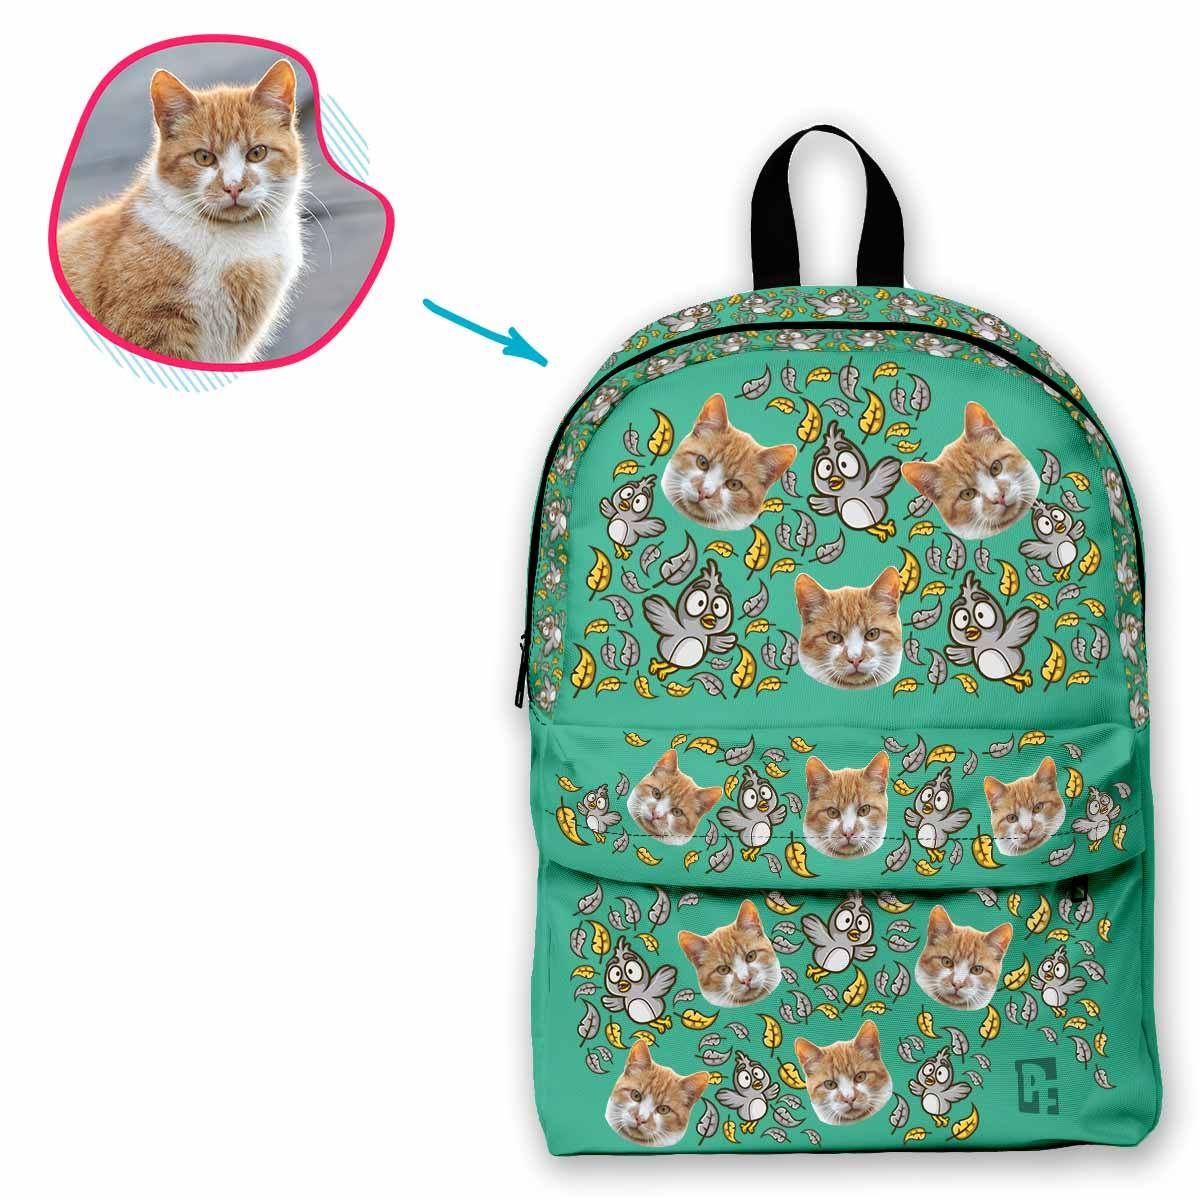 mint Bird classic backpack personalized with photo of face printed on it